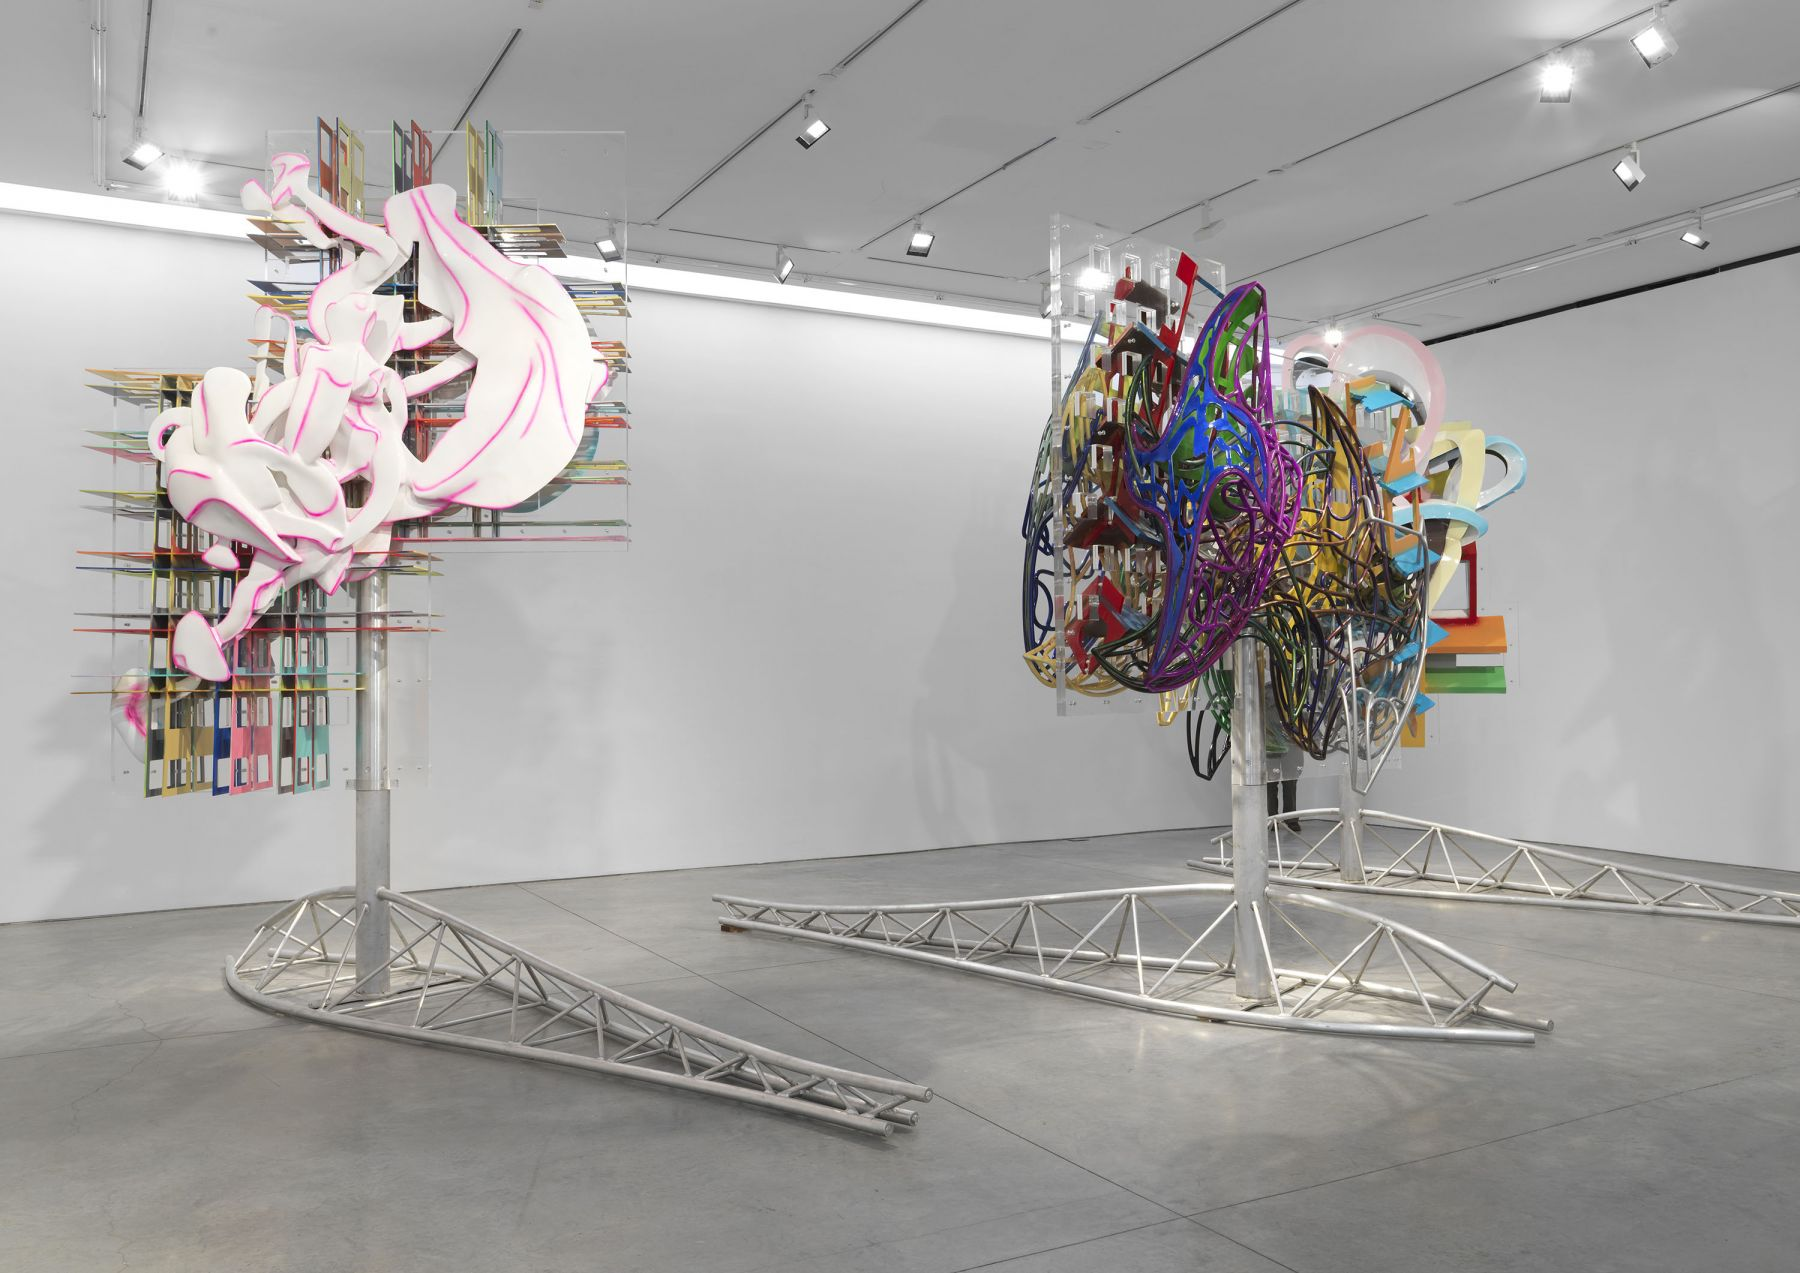 Two kinetic sculptures made by Frank Stella for sale at a Chelsea gallery